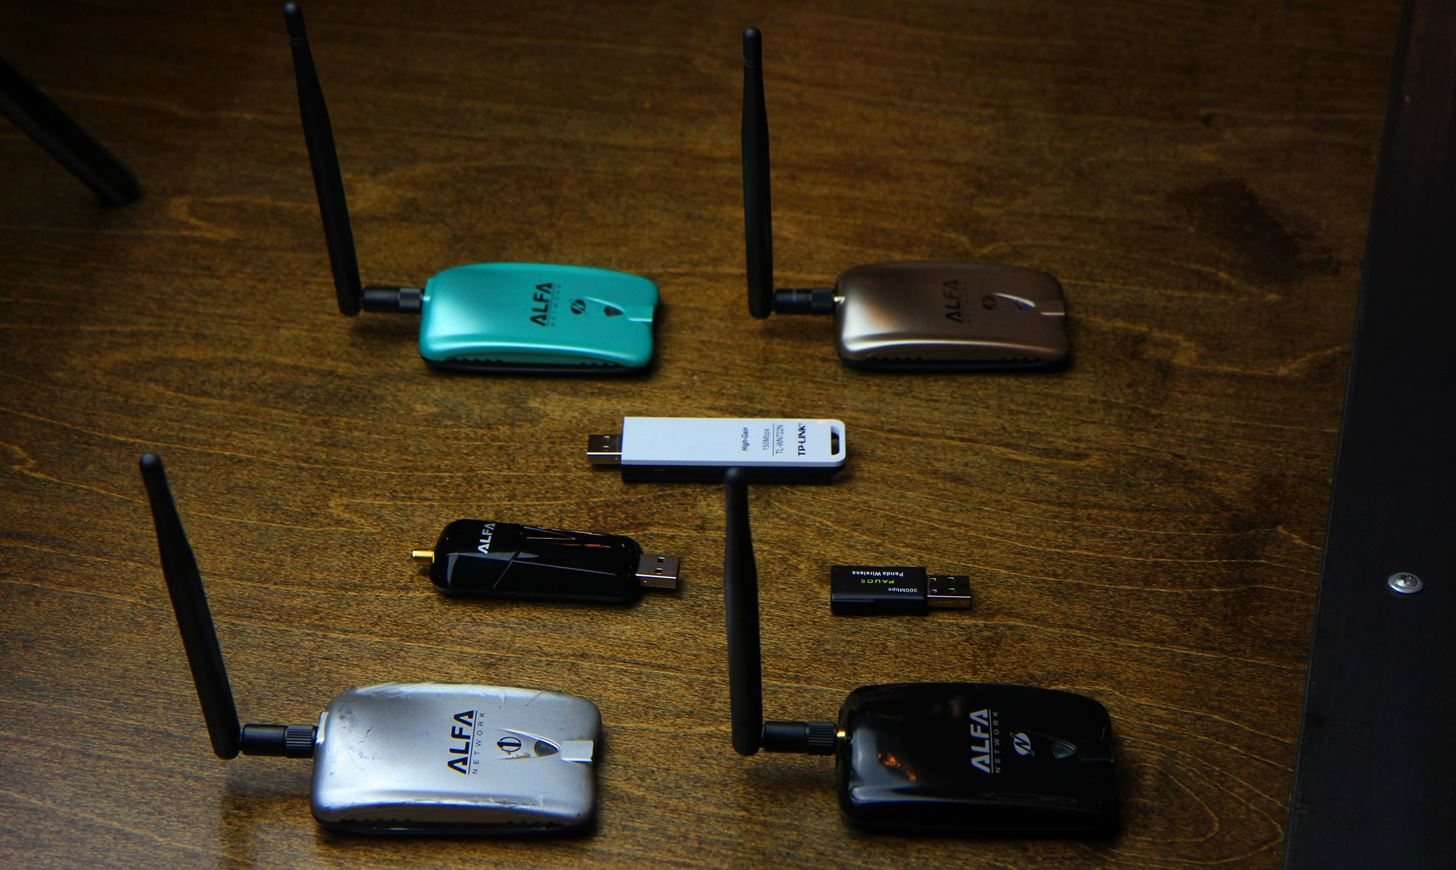 Buy the Best Wireless Network Adapter for Wi-Fi Hacking in 2019